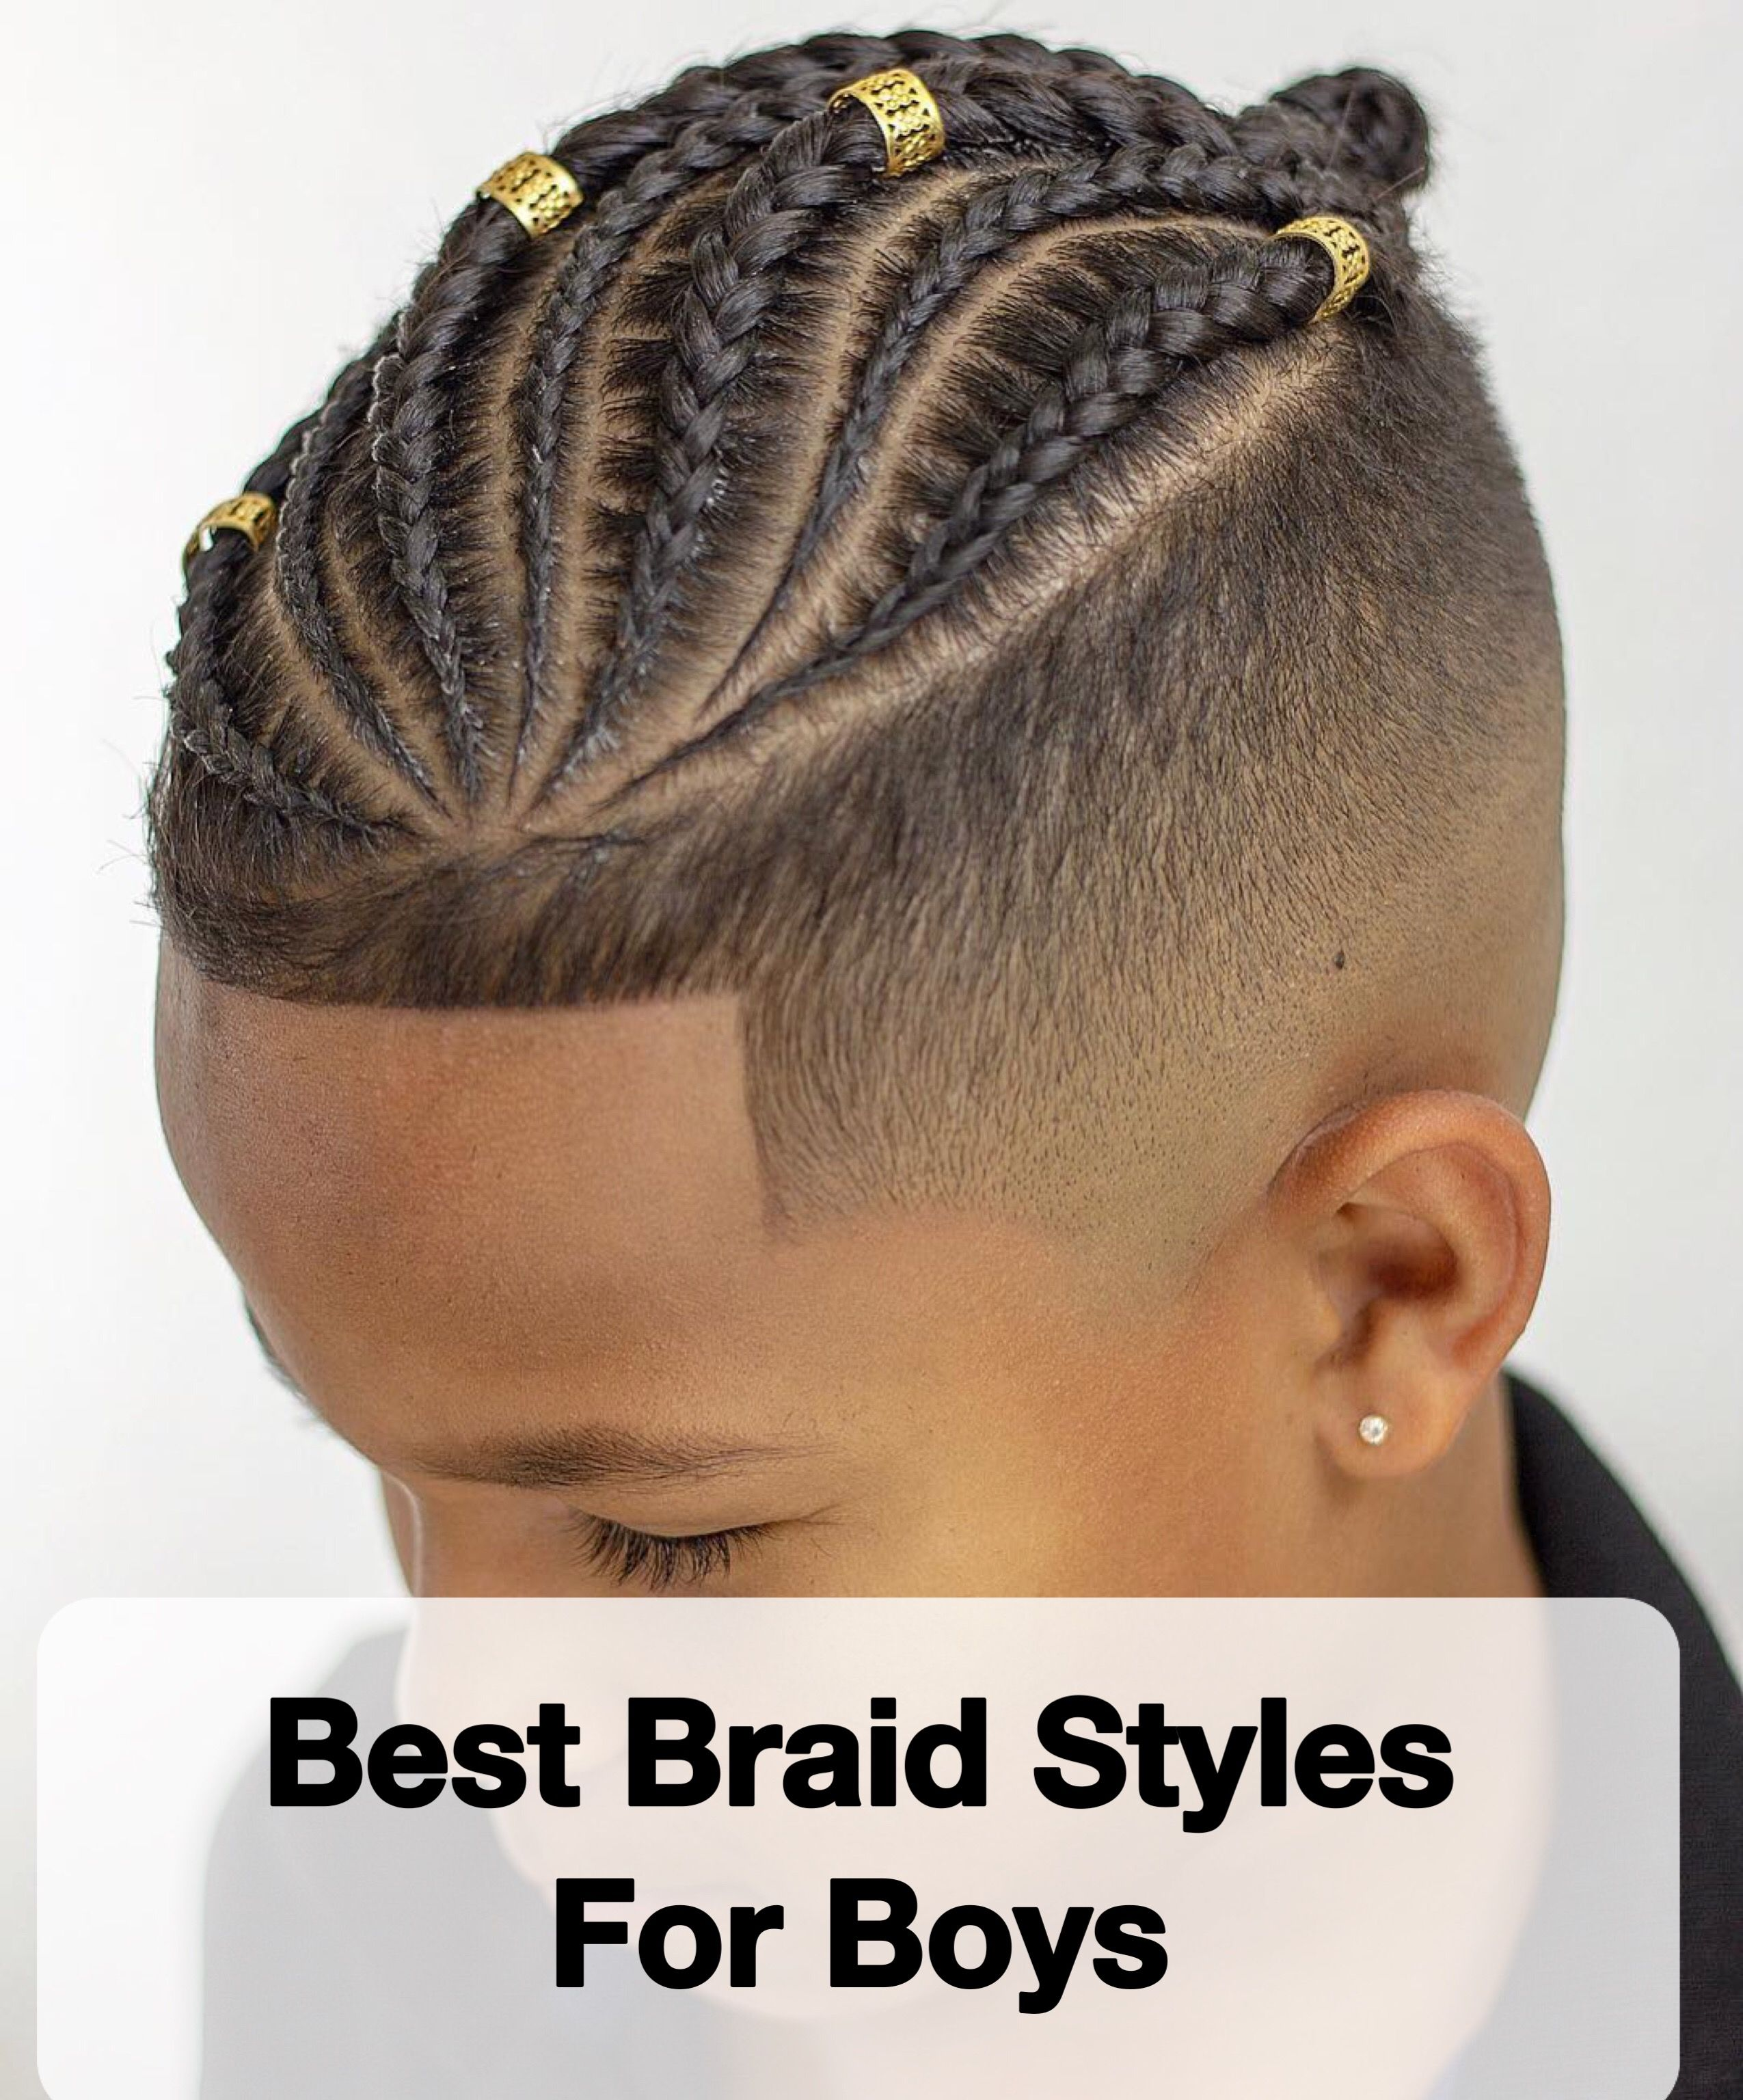 Braids For Kids 15 Amazing Braid Styles For Boys Boy Braids